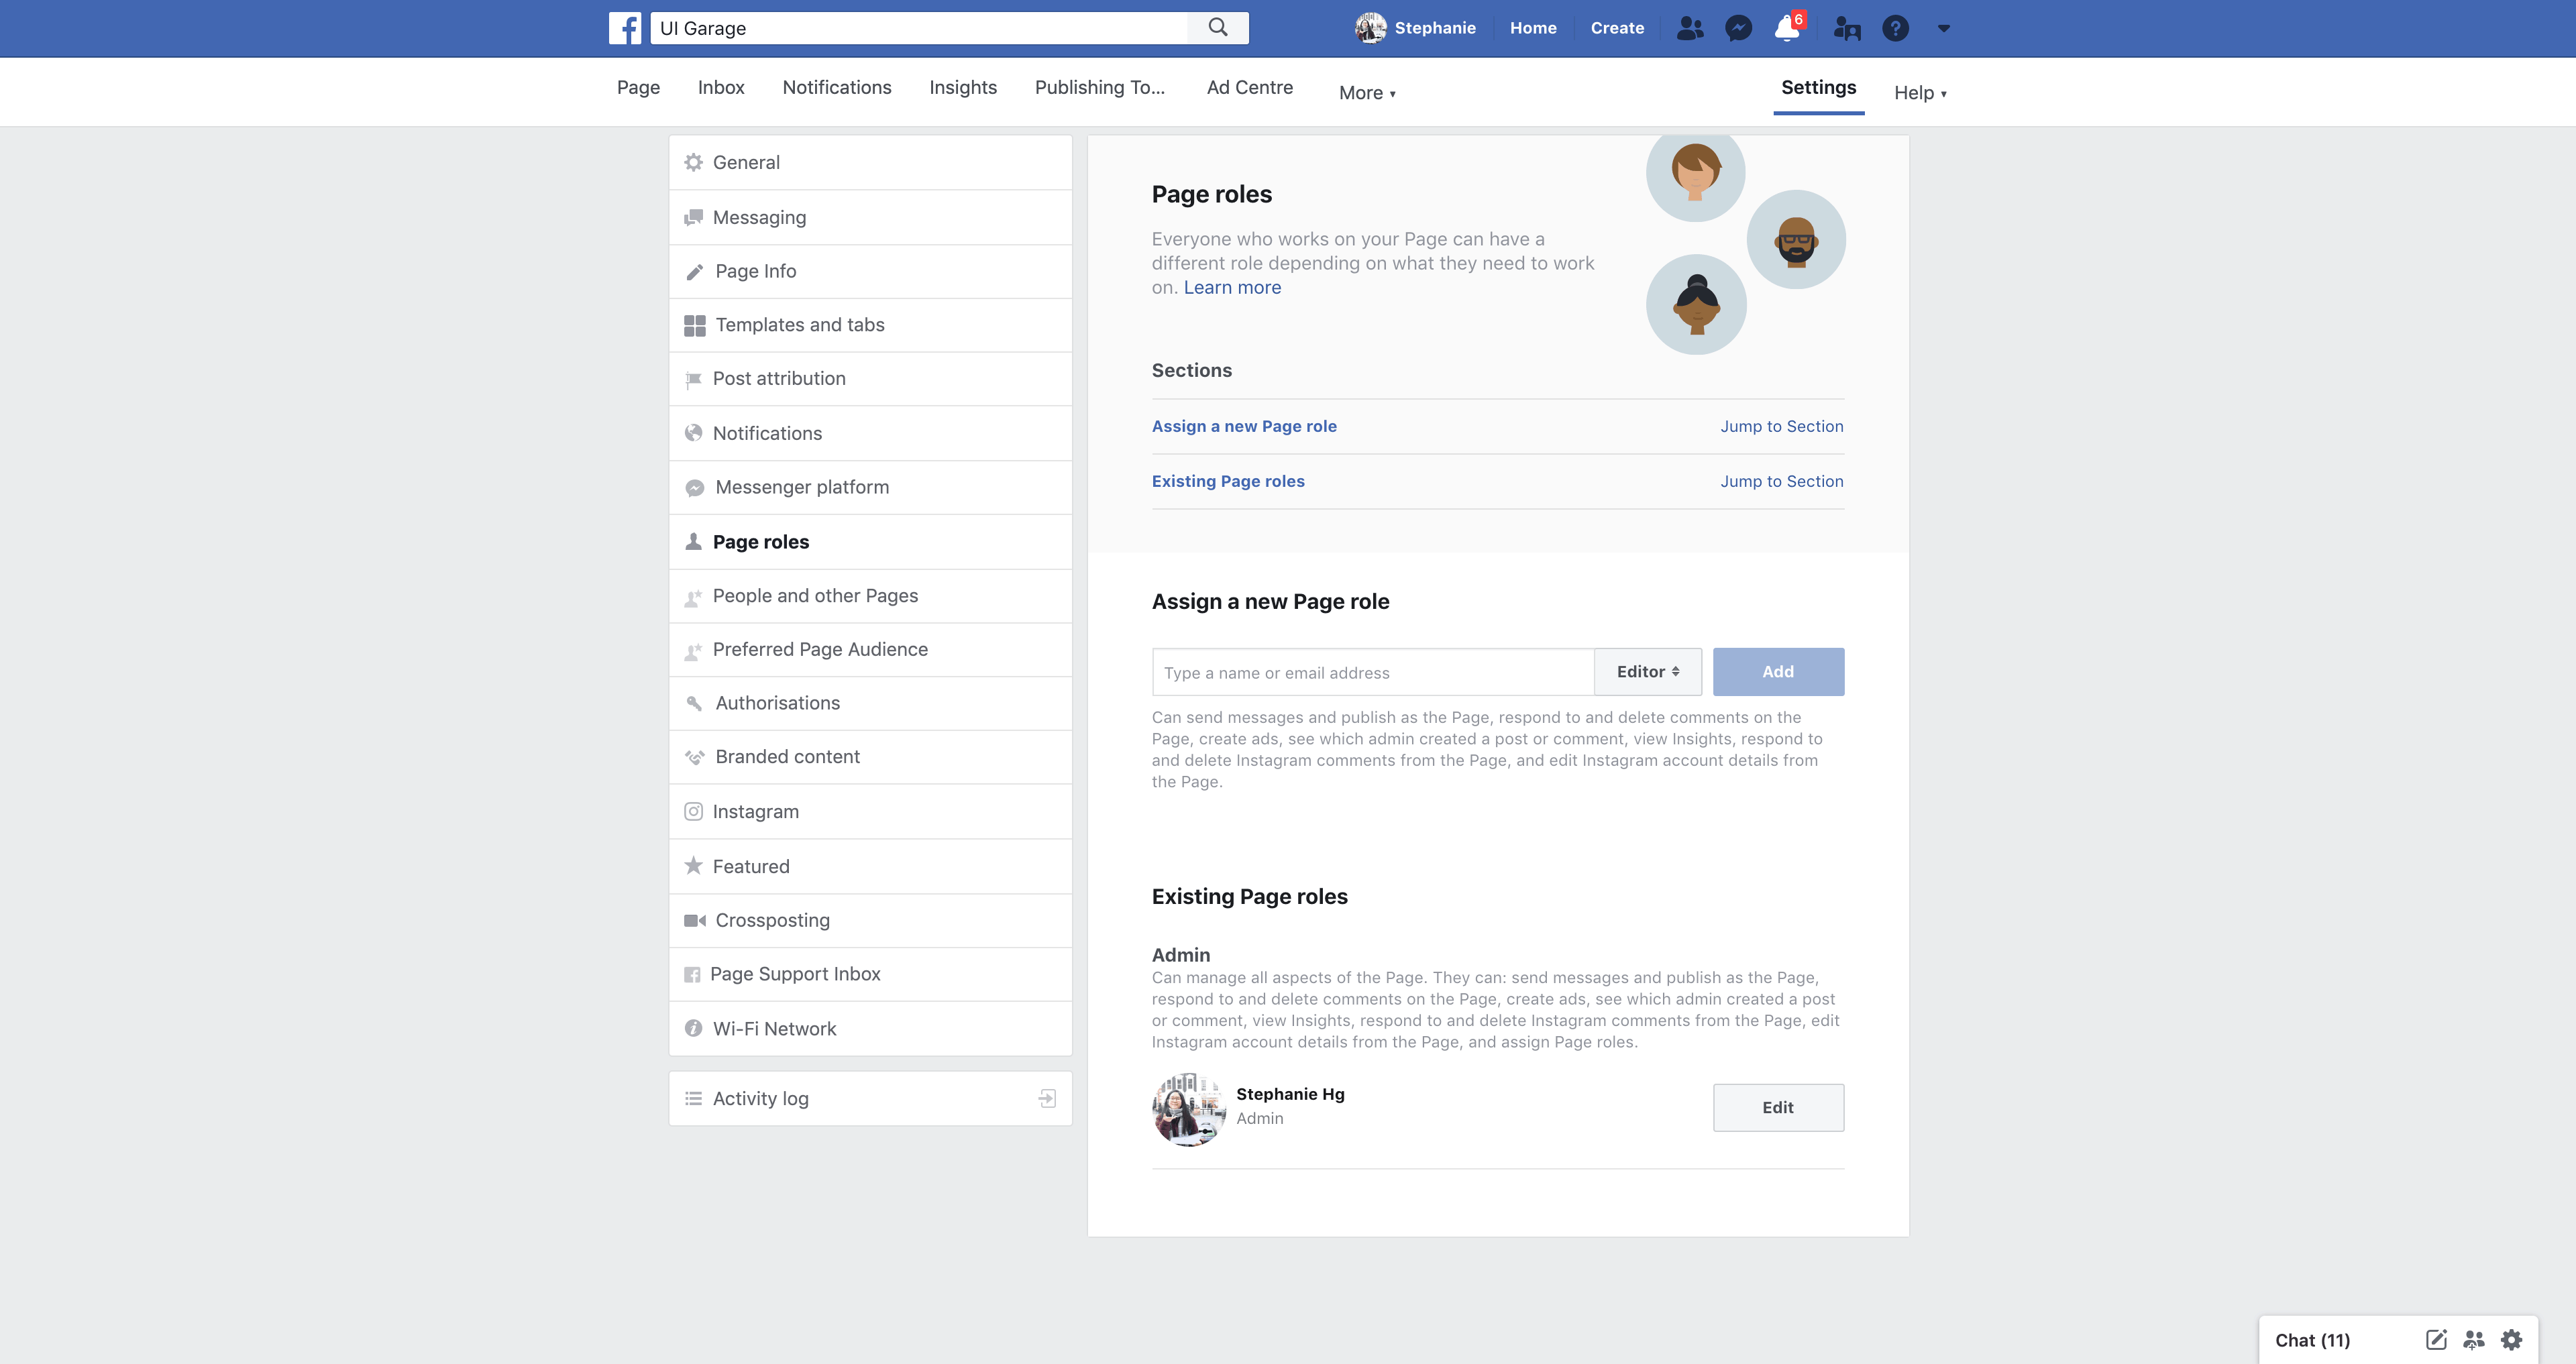 Page's Roles Settings by Facebook from UIGarage